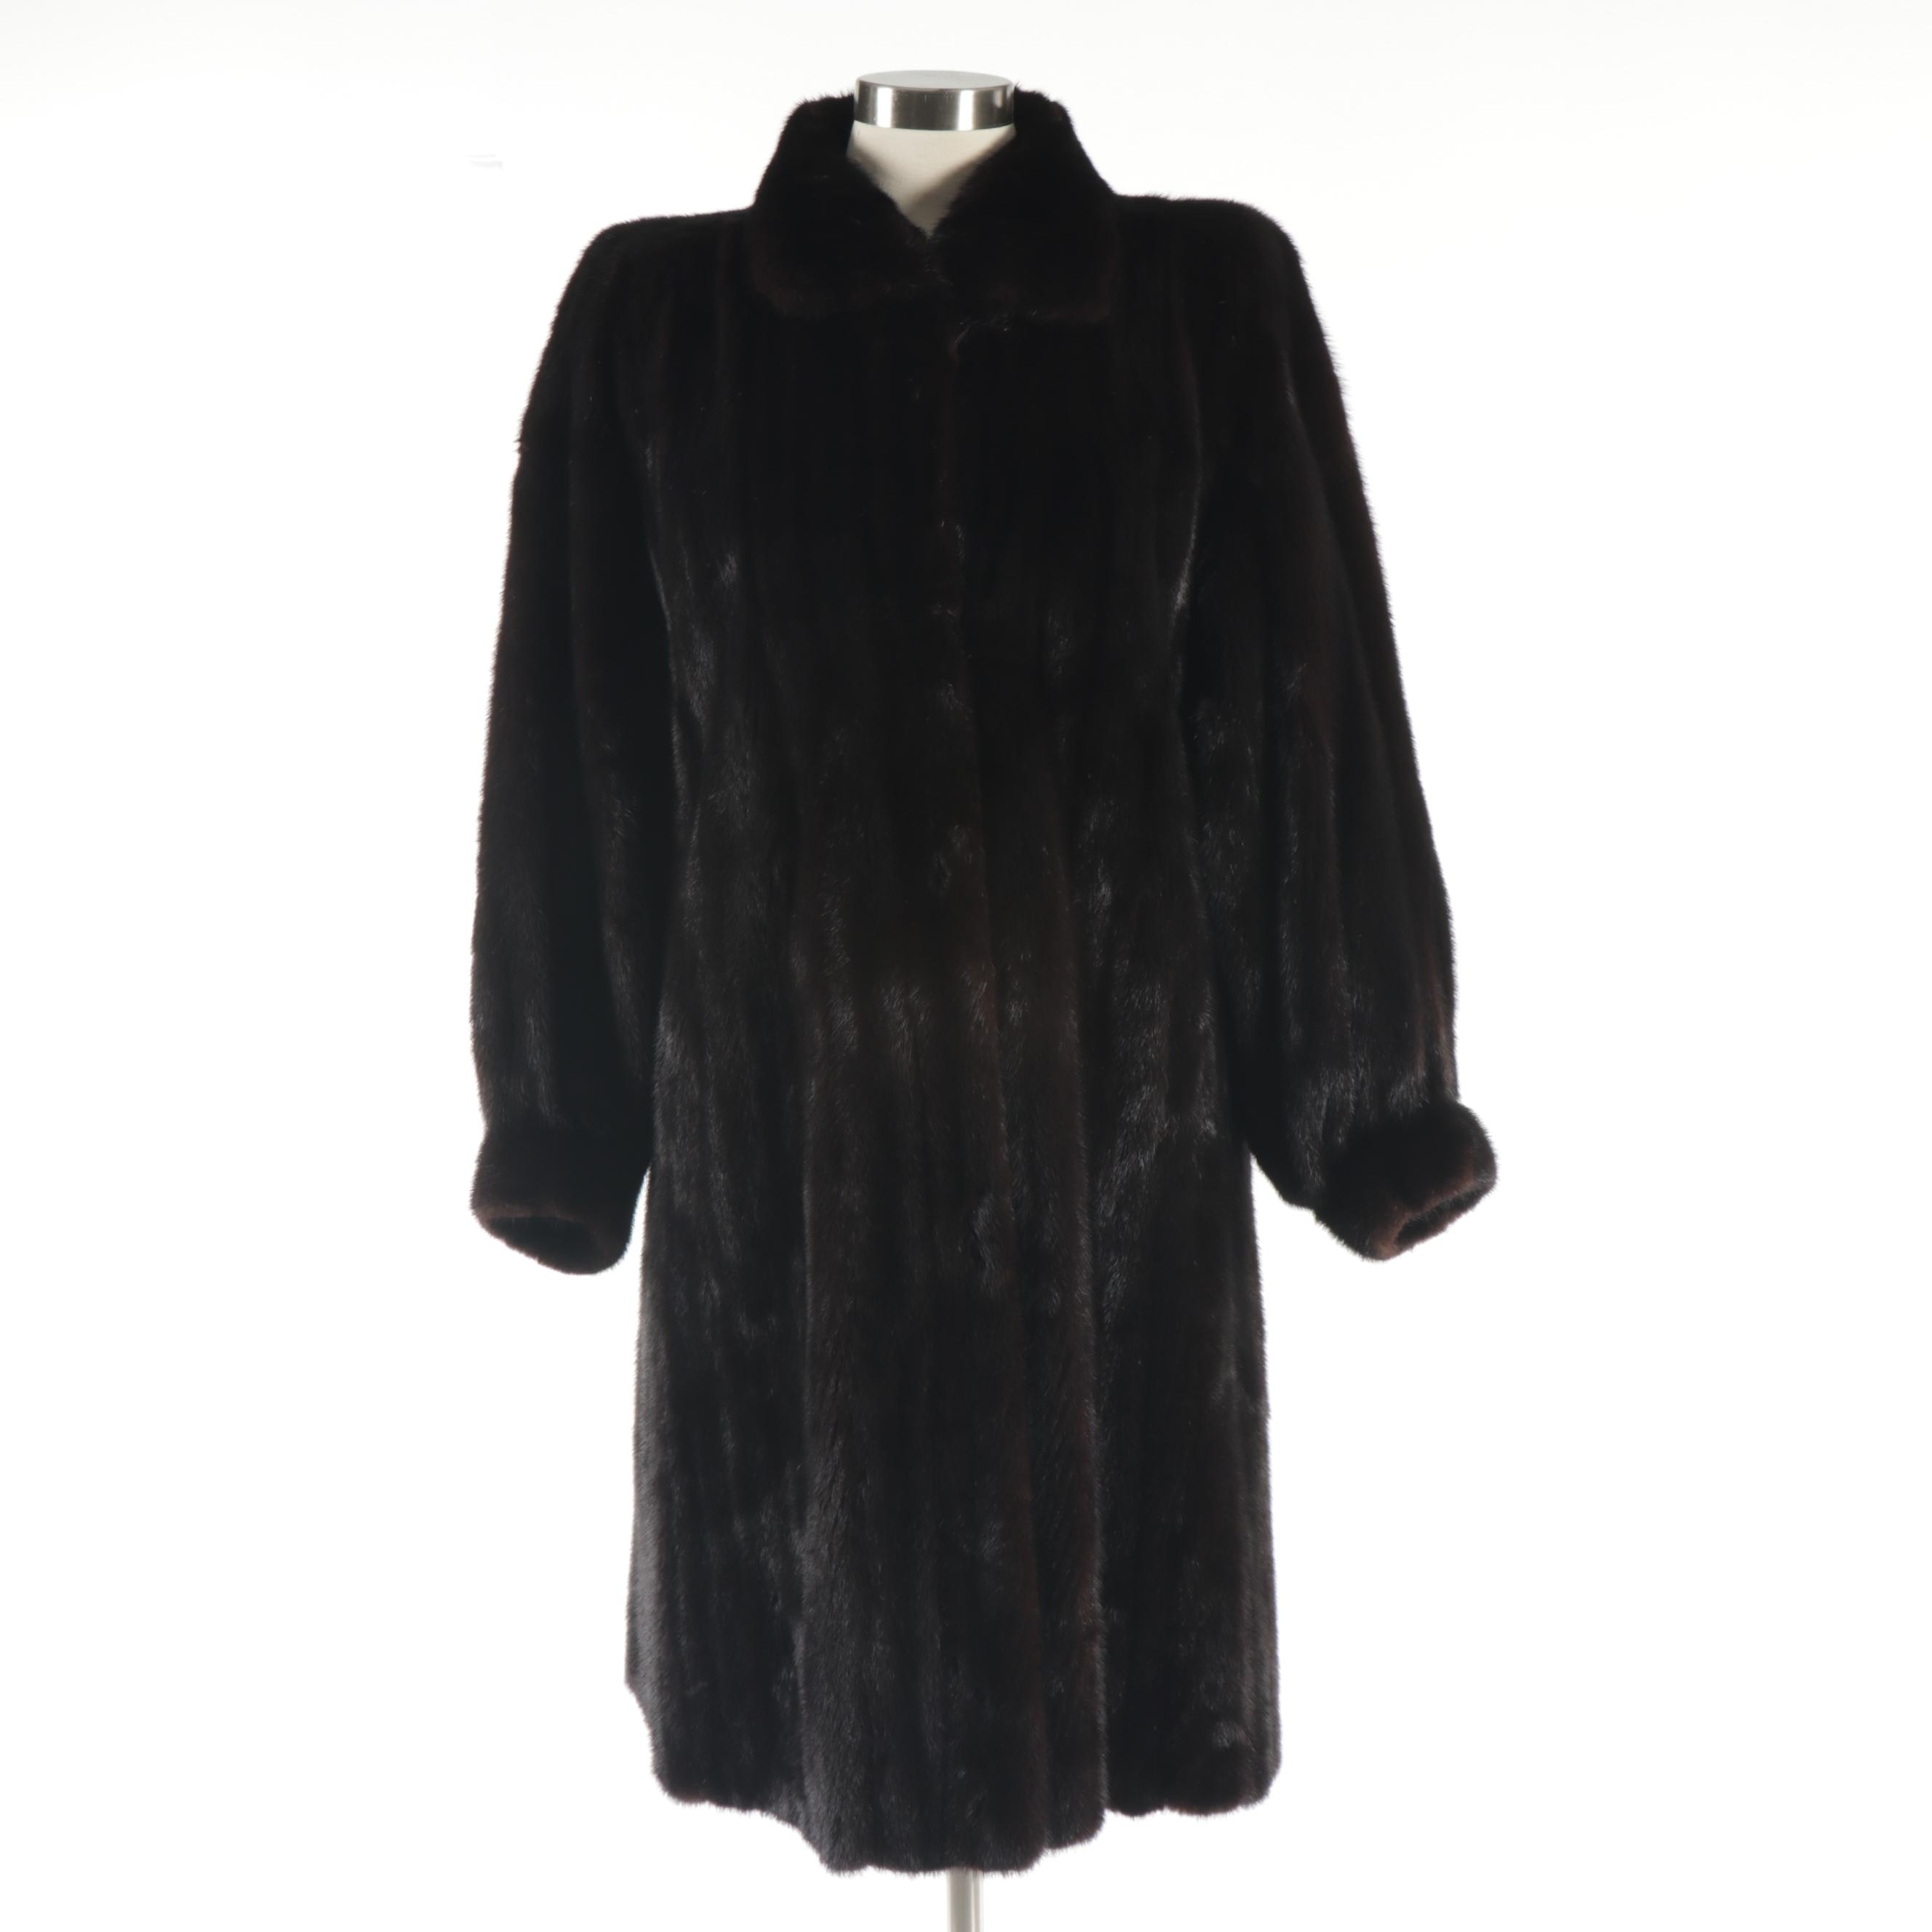 Women's Mink Fur Coat from Alexandor Furs